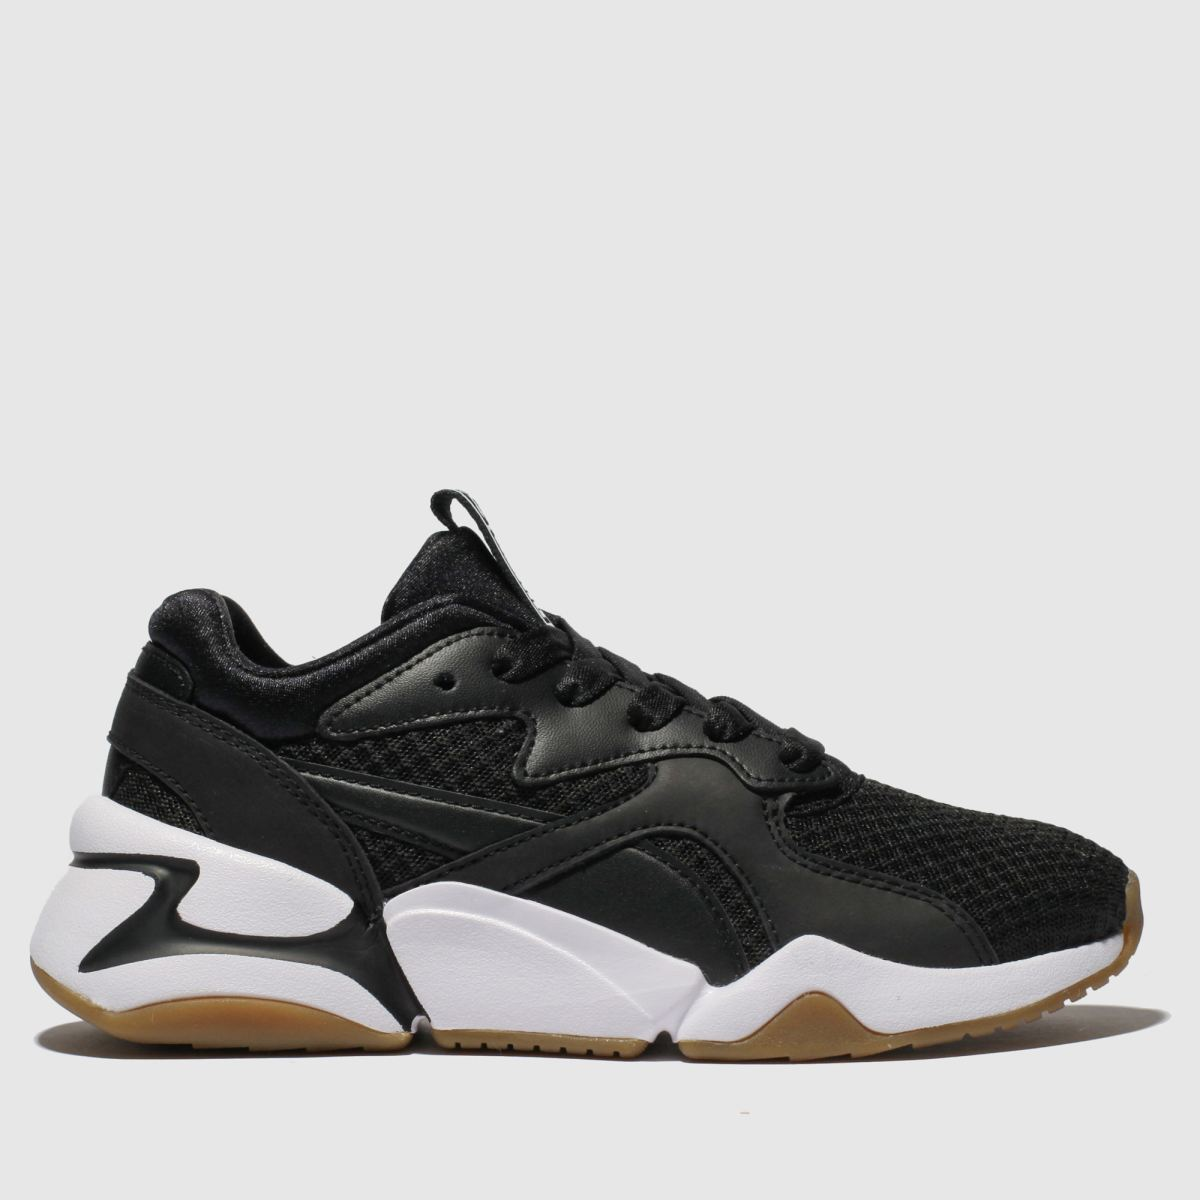 Puma Black & White Nova 90s Block Trainers